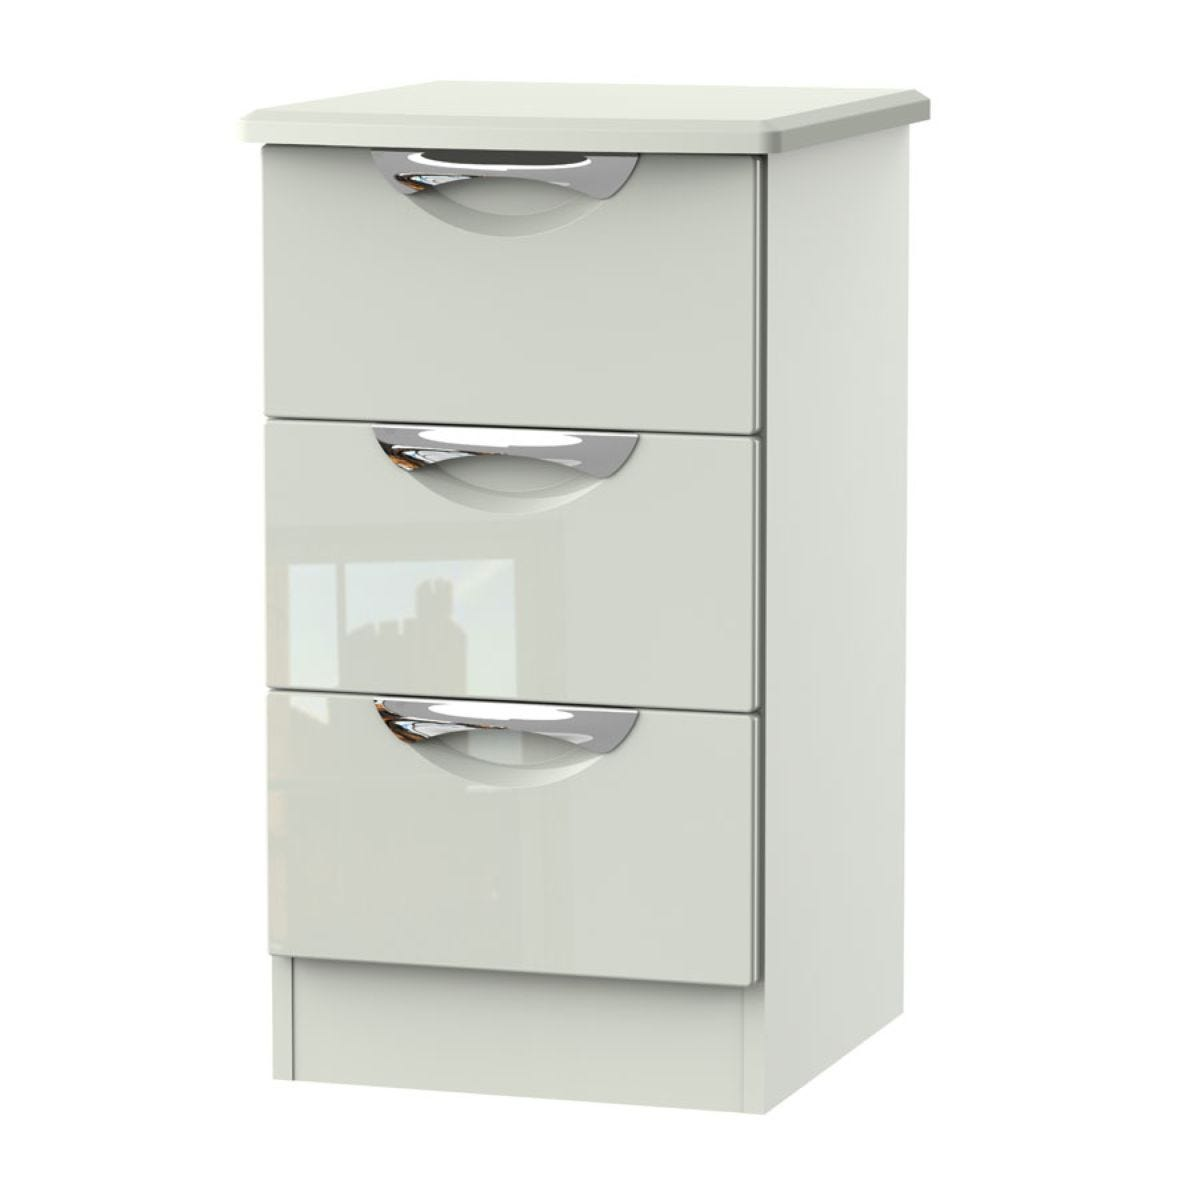 Indices 3-Drawer Bedside Cabinet - White/Grey